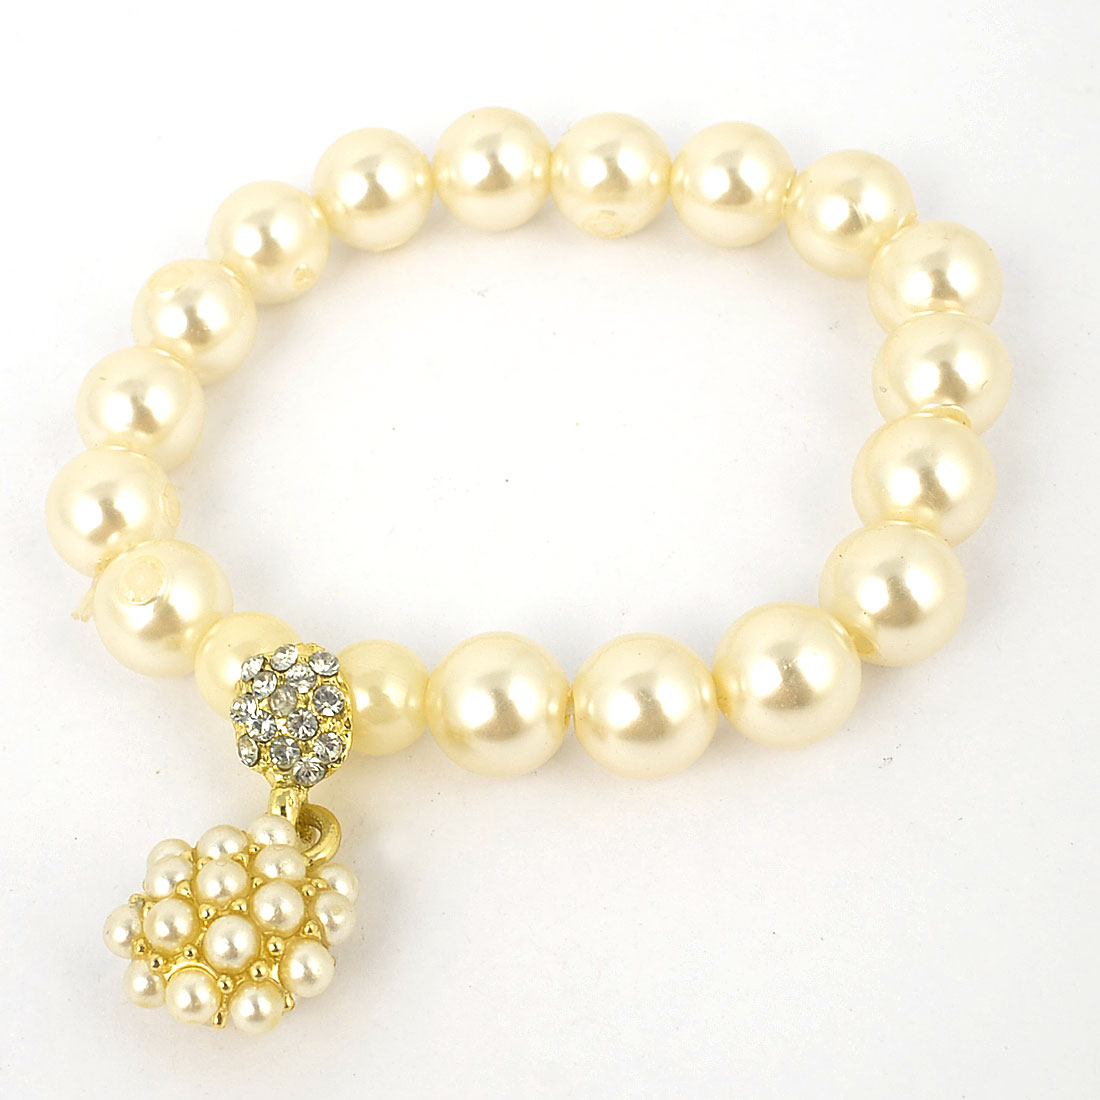 Women Faux Pearls Decor Gold Tone Dangle Stretchy Chain Bracelet